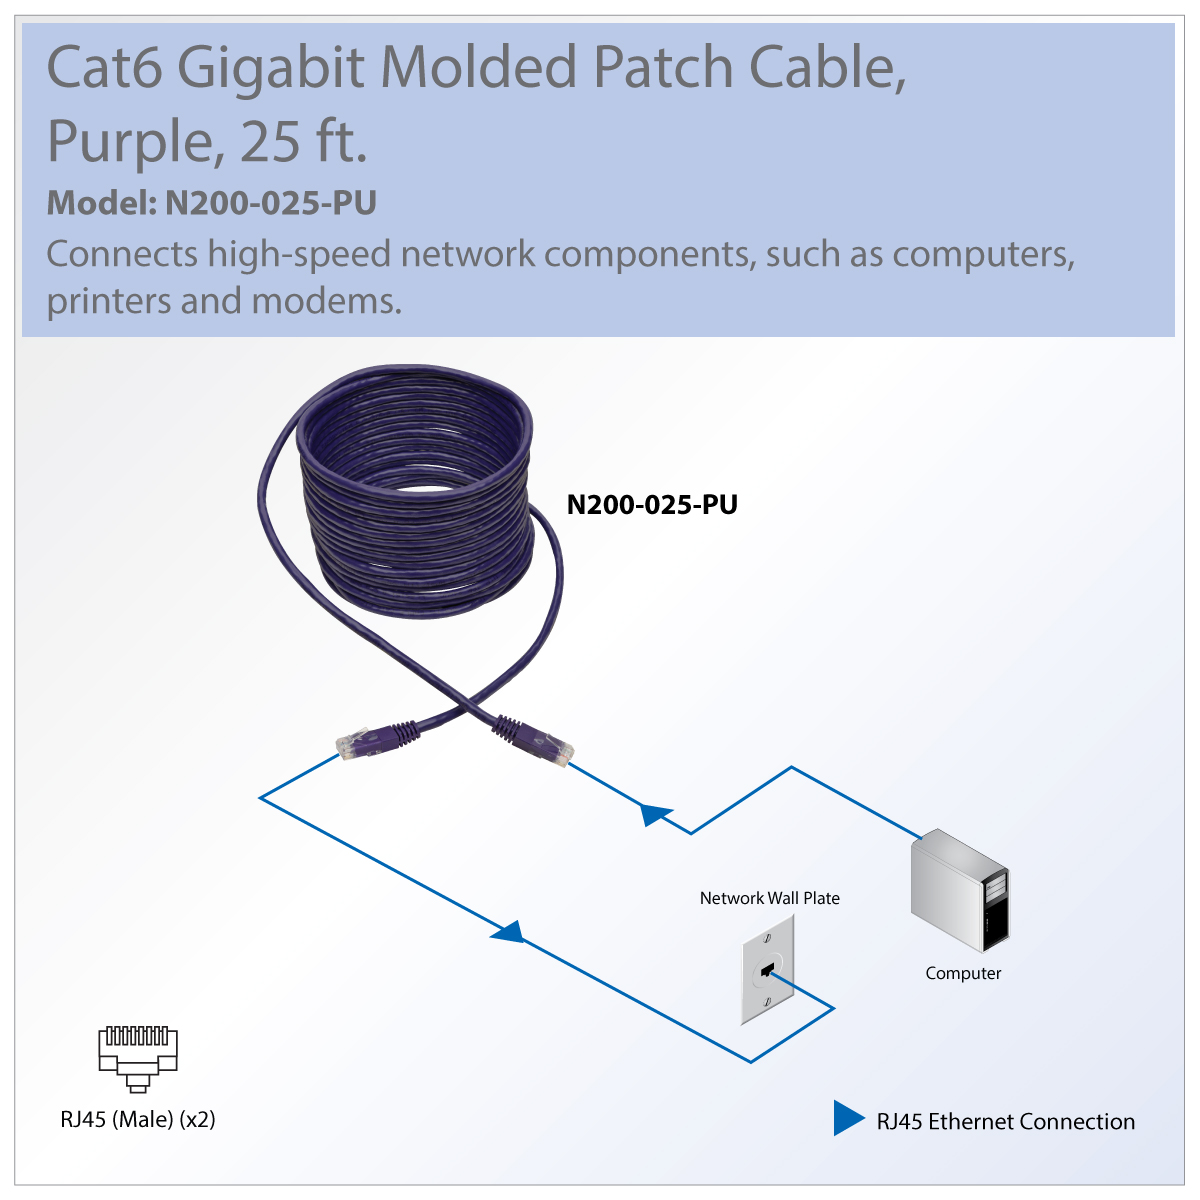 Tripp Lite Cat6 Cat5e Gigabit Molded Patch Cable Rj45 Mm 550mhz Wiring Diagram Get Free Image About Great For Connecting Components In Bandwidth Heavy Home Office Networks